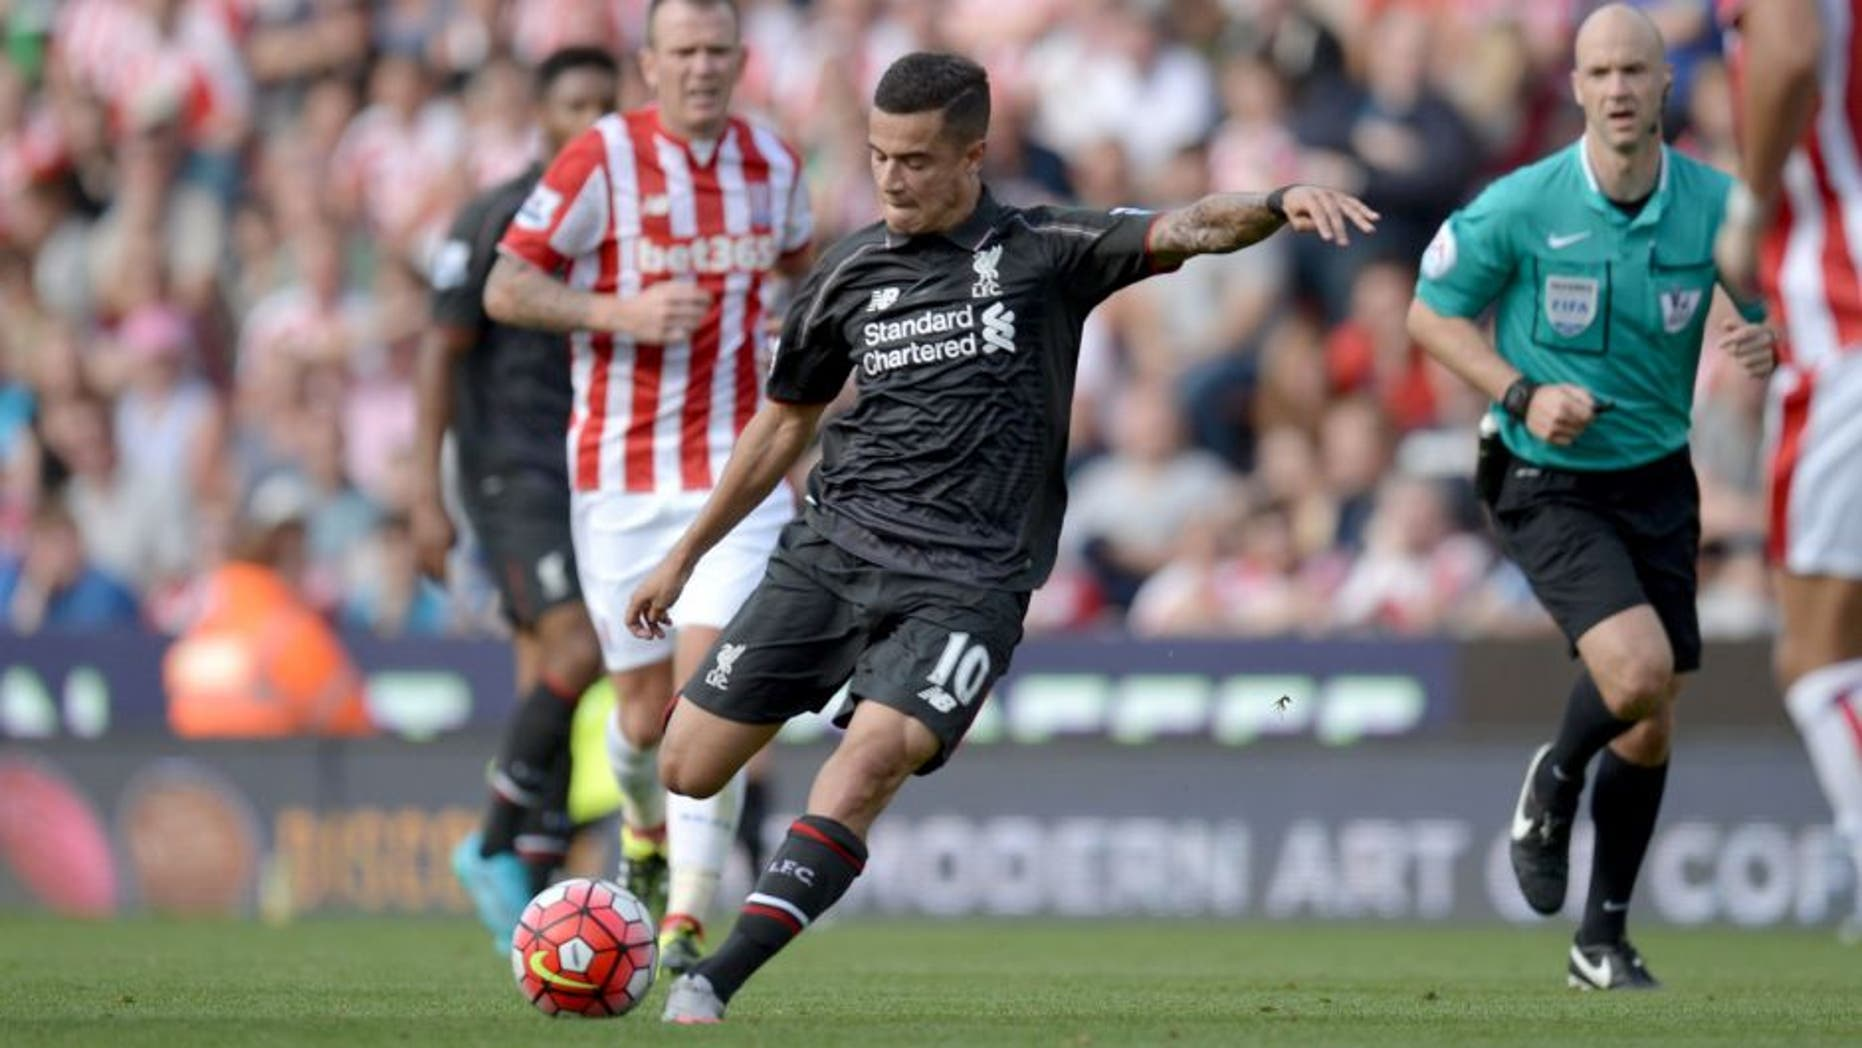 Liverpool's Brazilian midfielder Philippe Coutinho shoots to score the opening goal of the English Premier League football match between Stoke City and Liverpool at the Britannia Stadium in Stoke-on-Trent, central England on August 9, 2015. AFP PHOTO / OLI SCARFF RESTRICTED TO EDITORIAL USE. No use with unauthorized audio, video, data, fixture lists, club/league logos or 'live' services. Online in-match use limited to 75 images, no video emulation. No use in betting, games or single club/league/player publications.. (Photo credit should read OLI SCARFF/AFP/Getty Images)